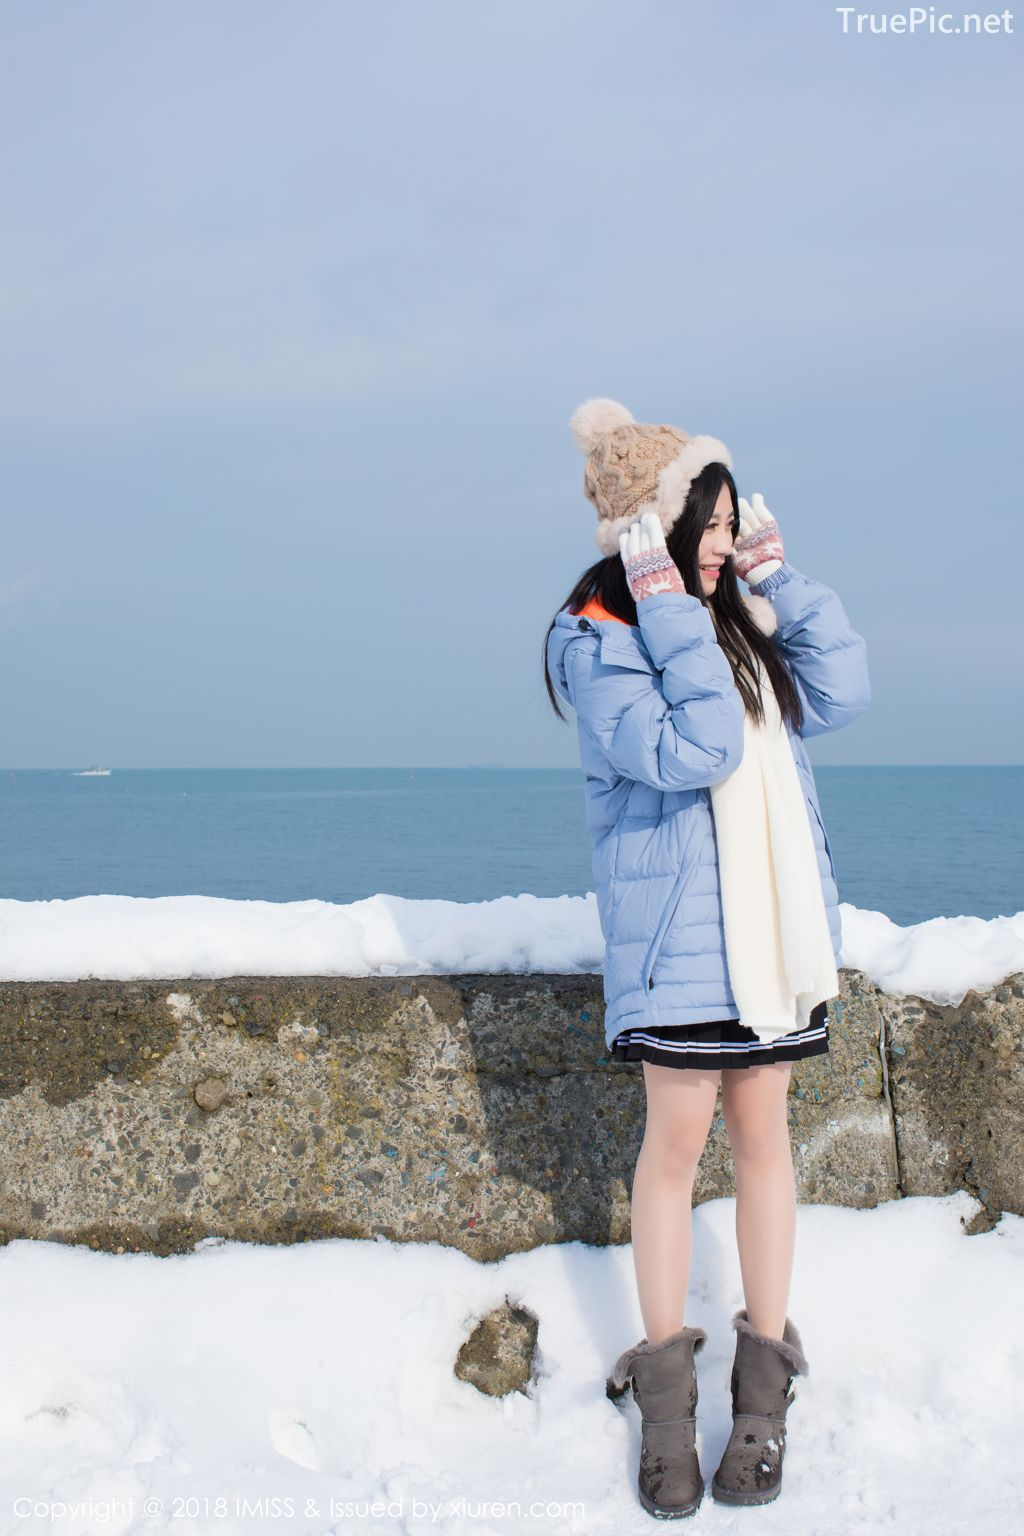 Image-IMISS-Vol.262-Sabrina model–Xu-Nuo-许诺-Sparkling-White-Snow-TruePic.net- Picture-4